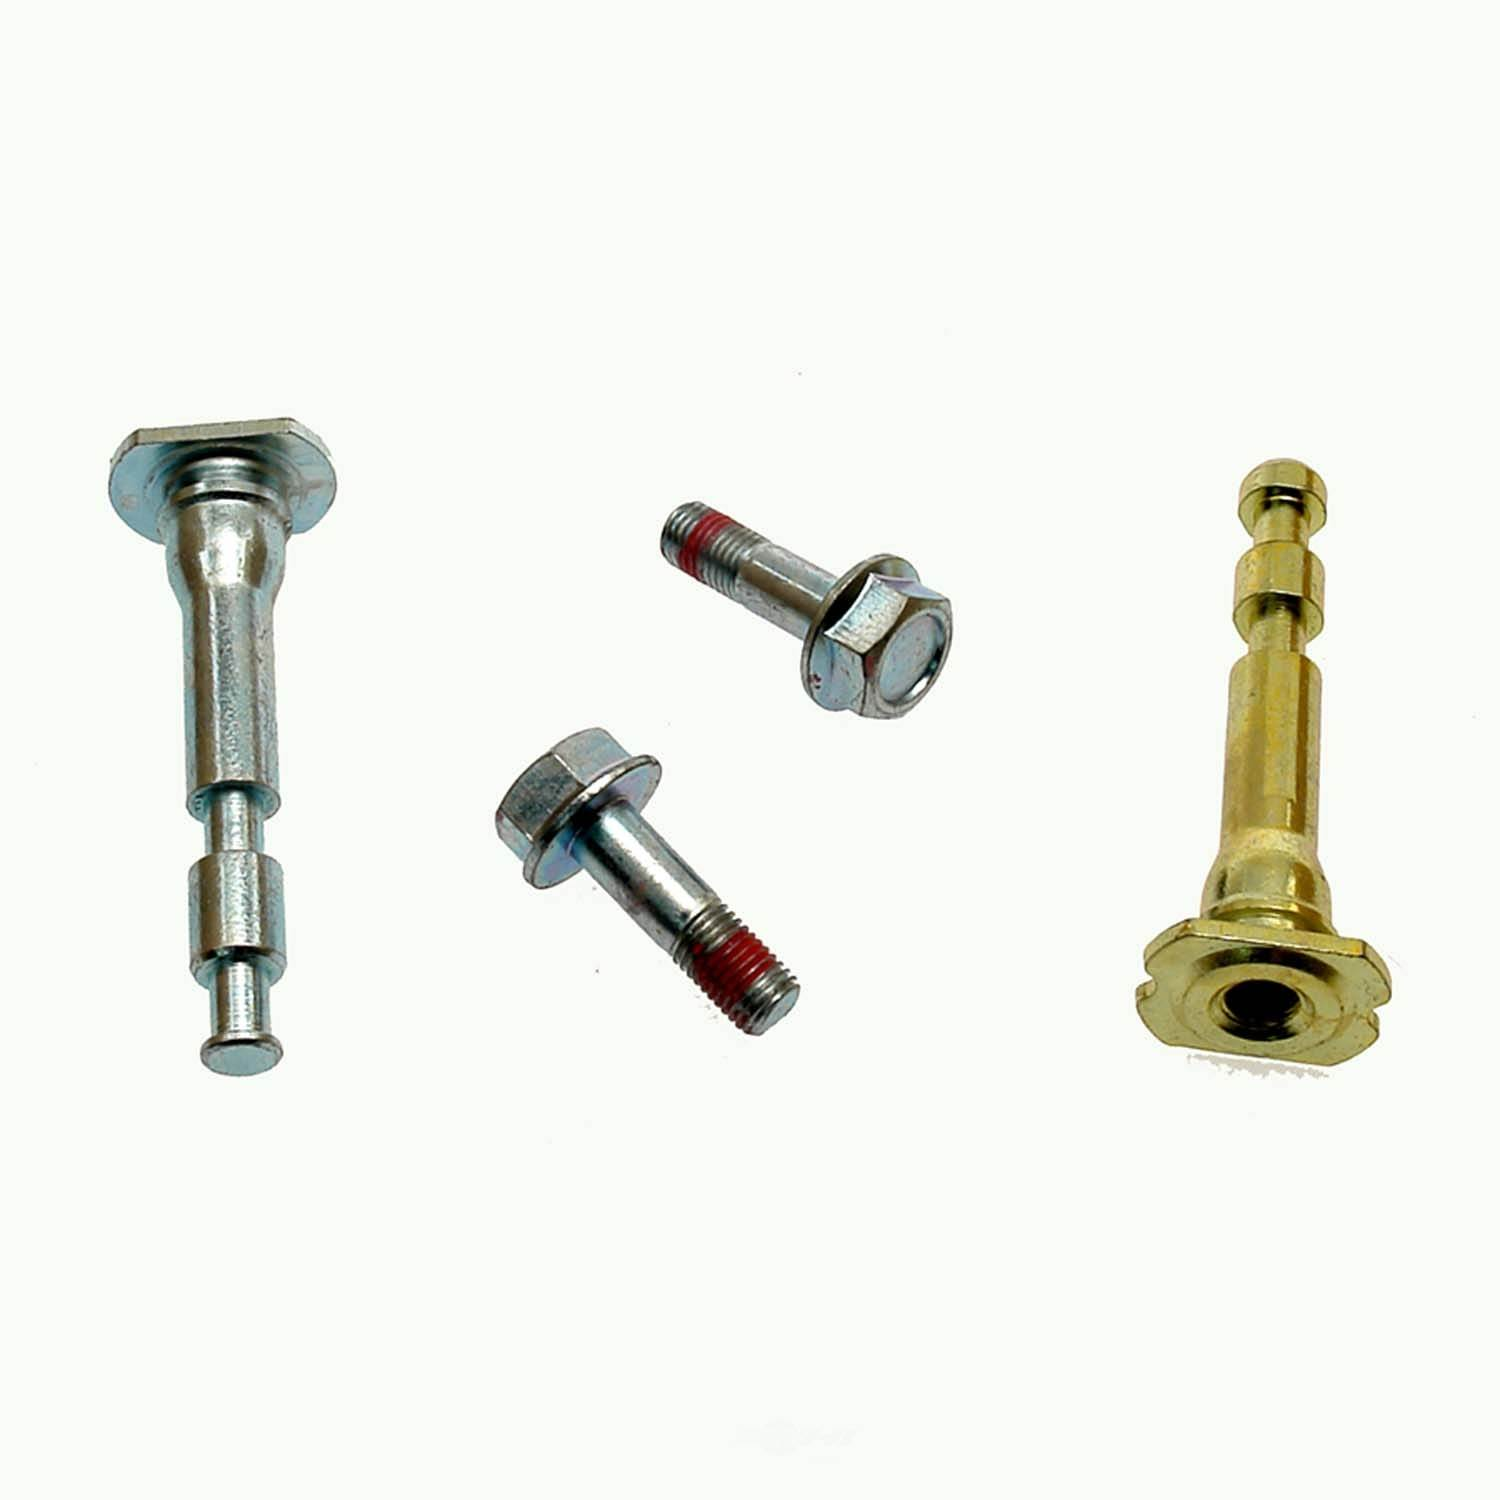 CARLSON QUALITY BRAKE PARTS - Disc Brake Caliper Guide Pin Kit (Rear) - CRL 14261